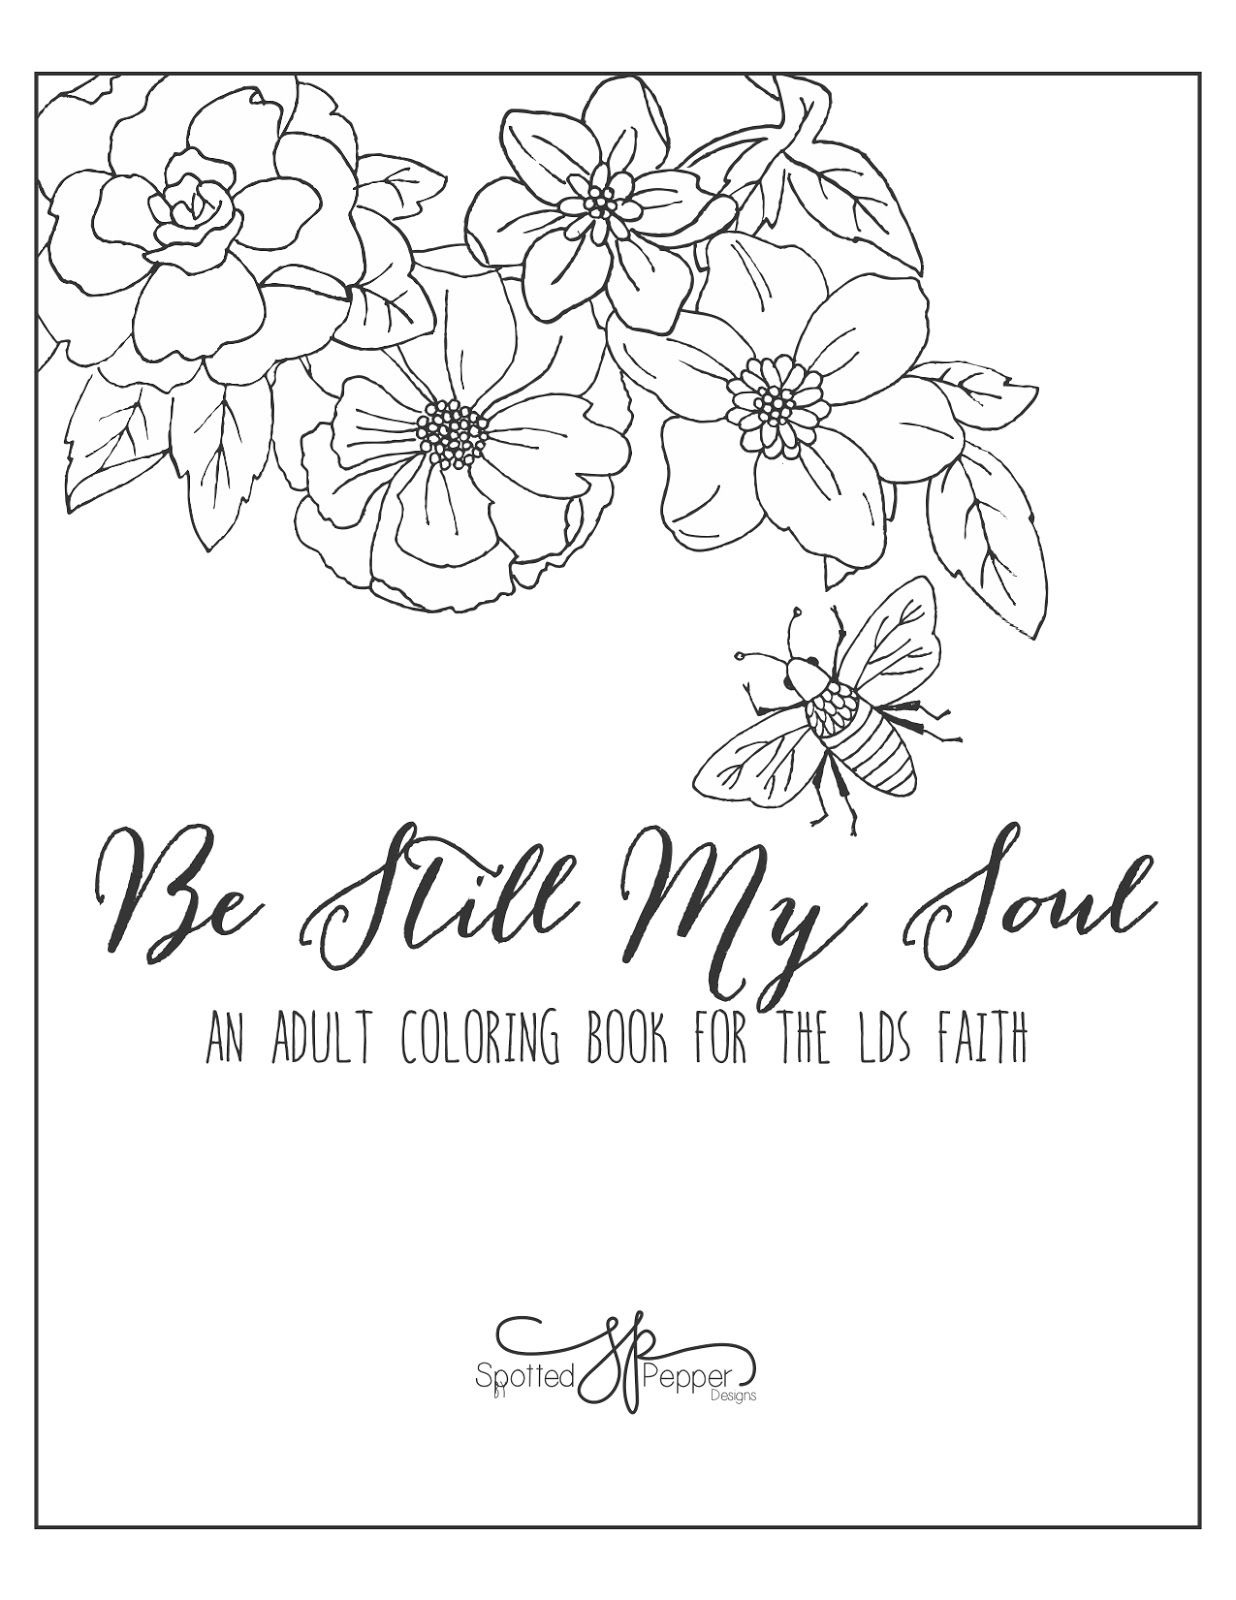 Spotted Pepper Designs: Be Still My Soul (a coloring book